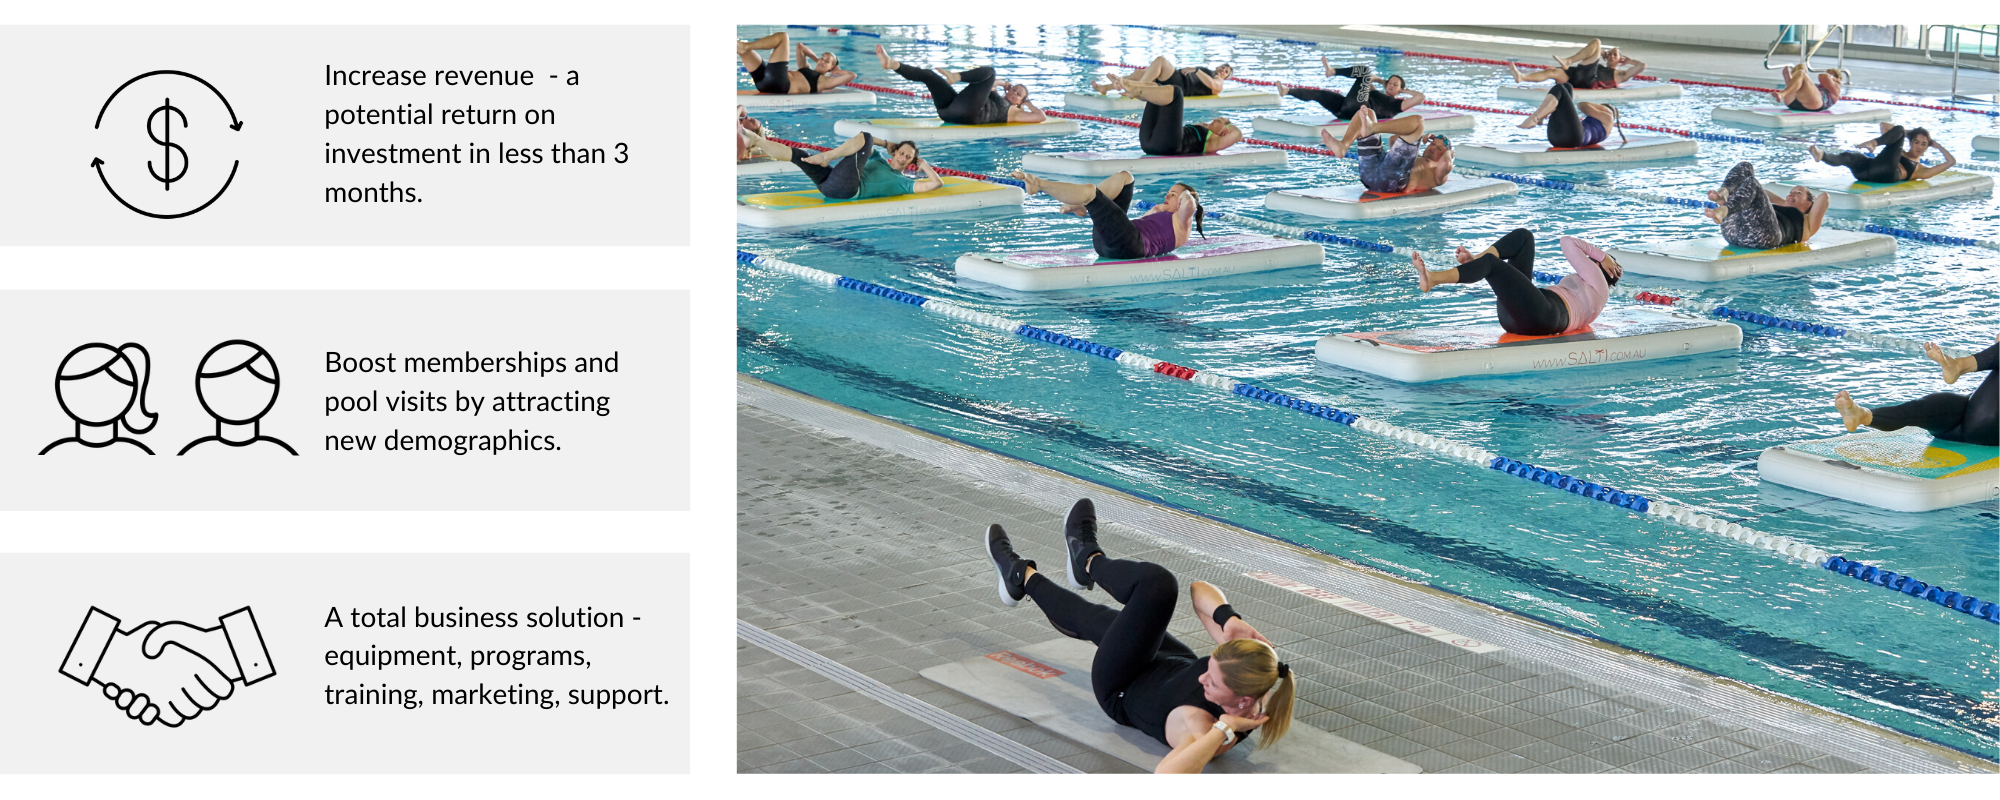 Run Salti group fitness classes at your pool - increase revenue, boost memberships, a total business solution